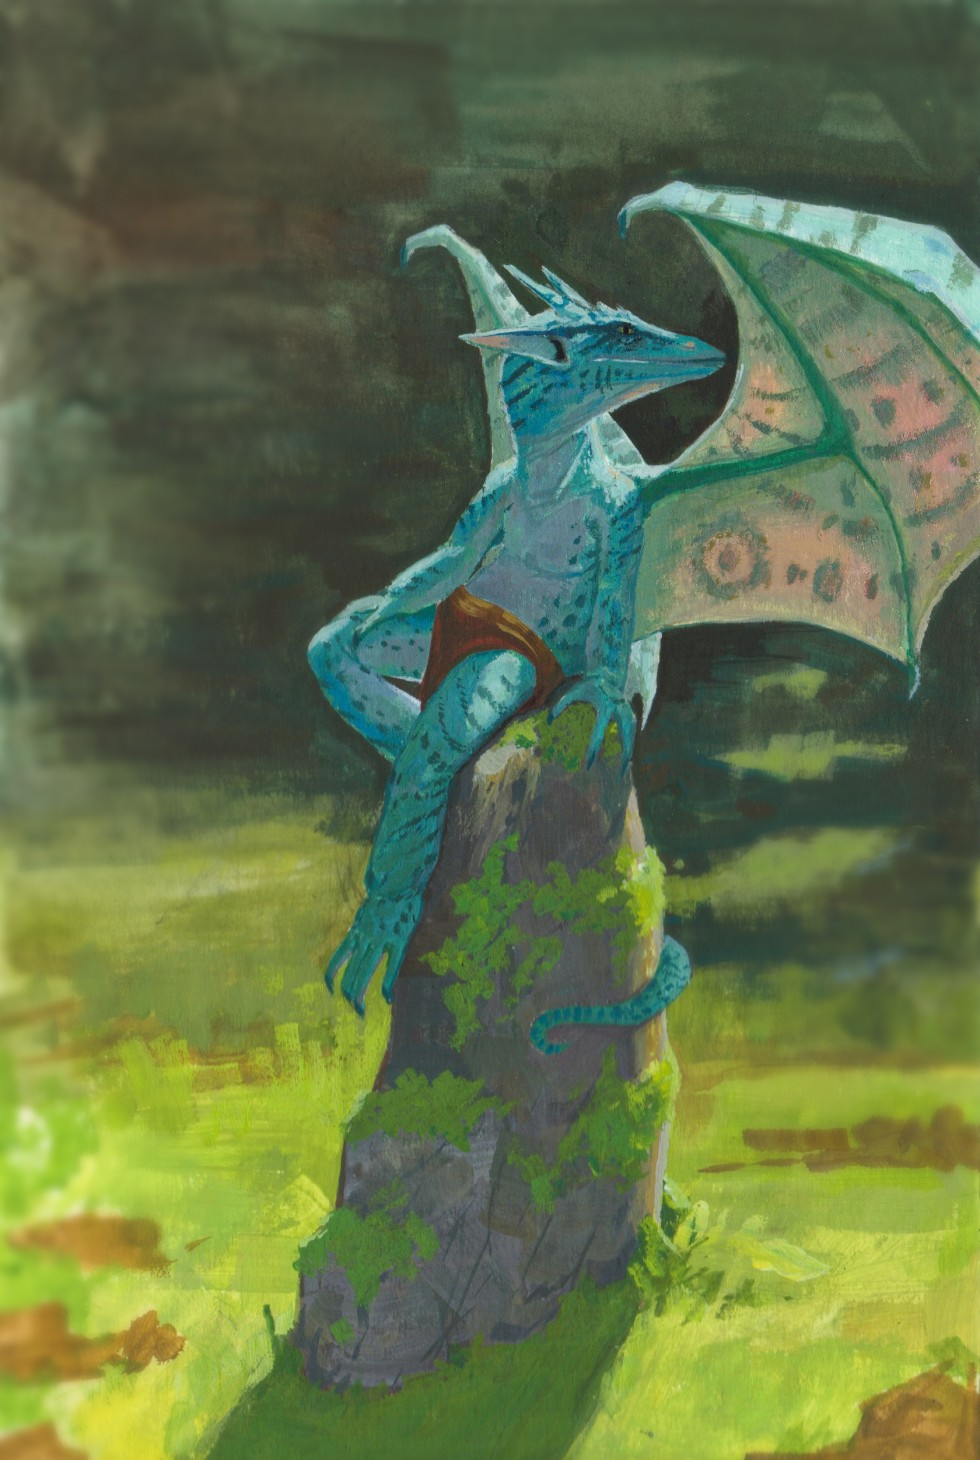 Bitu a preening, bright blue kobold. This scene depicts a bright blue dargon-like creature of childish prroporrtions seated comfortably on a tall mossy stone. It wears nothing but a reddish loincloth, its bright blue scaly skin patterned with darker strip